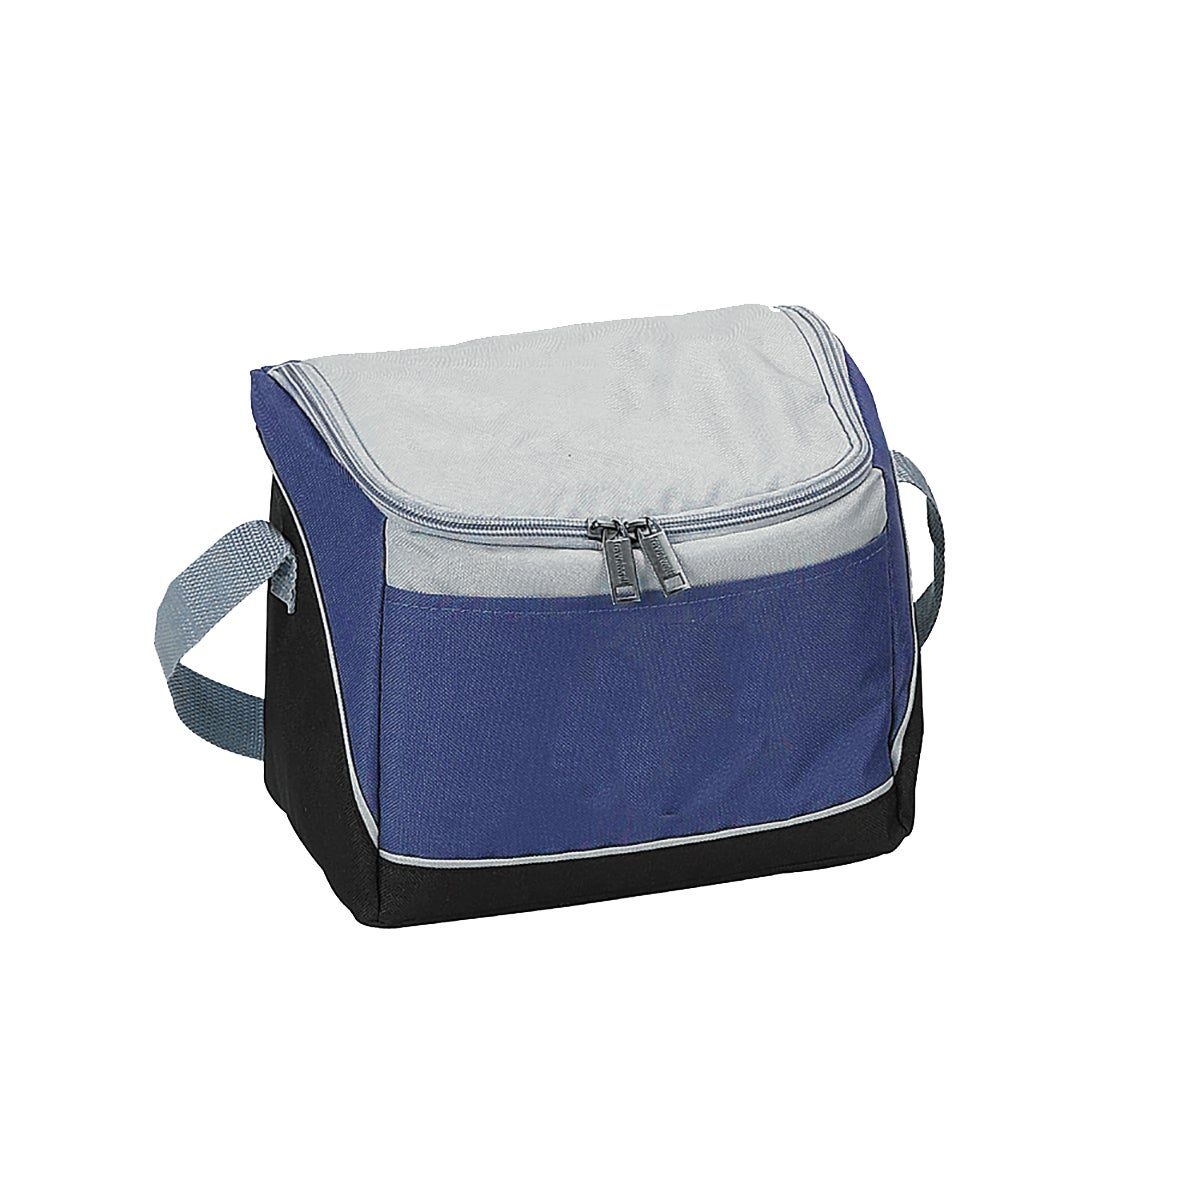 GOOD HOPE BAGS Recycled PET Cooler Lunch Bag (Blue)